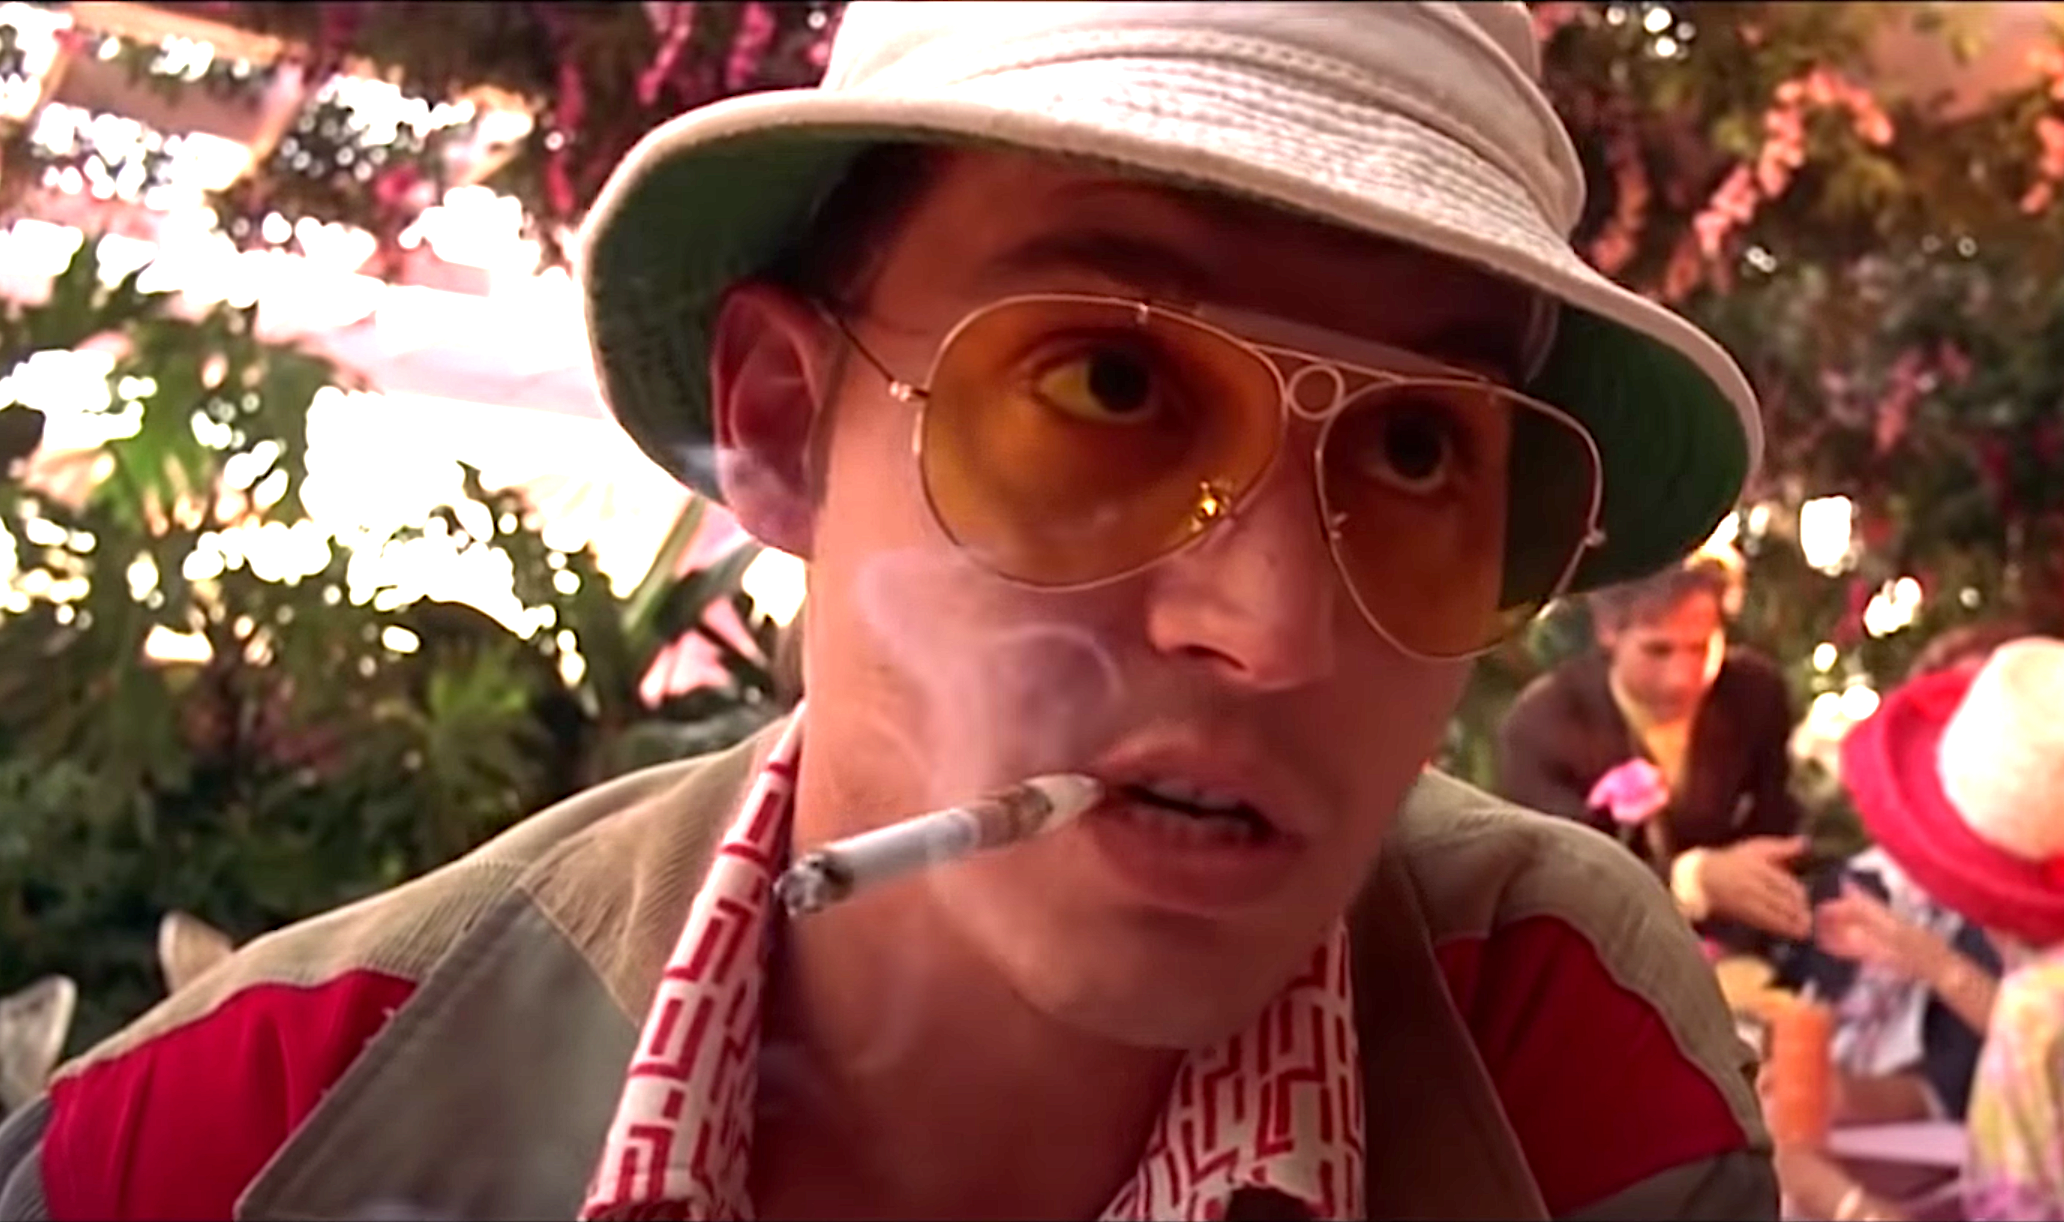 Johnny Depp as Hunter S. Thompson wearing yellow aviator sunglasses and smoking a cigarette